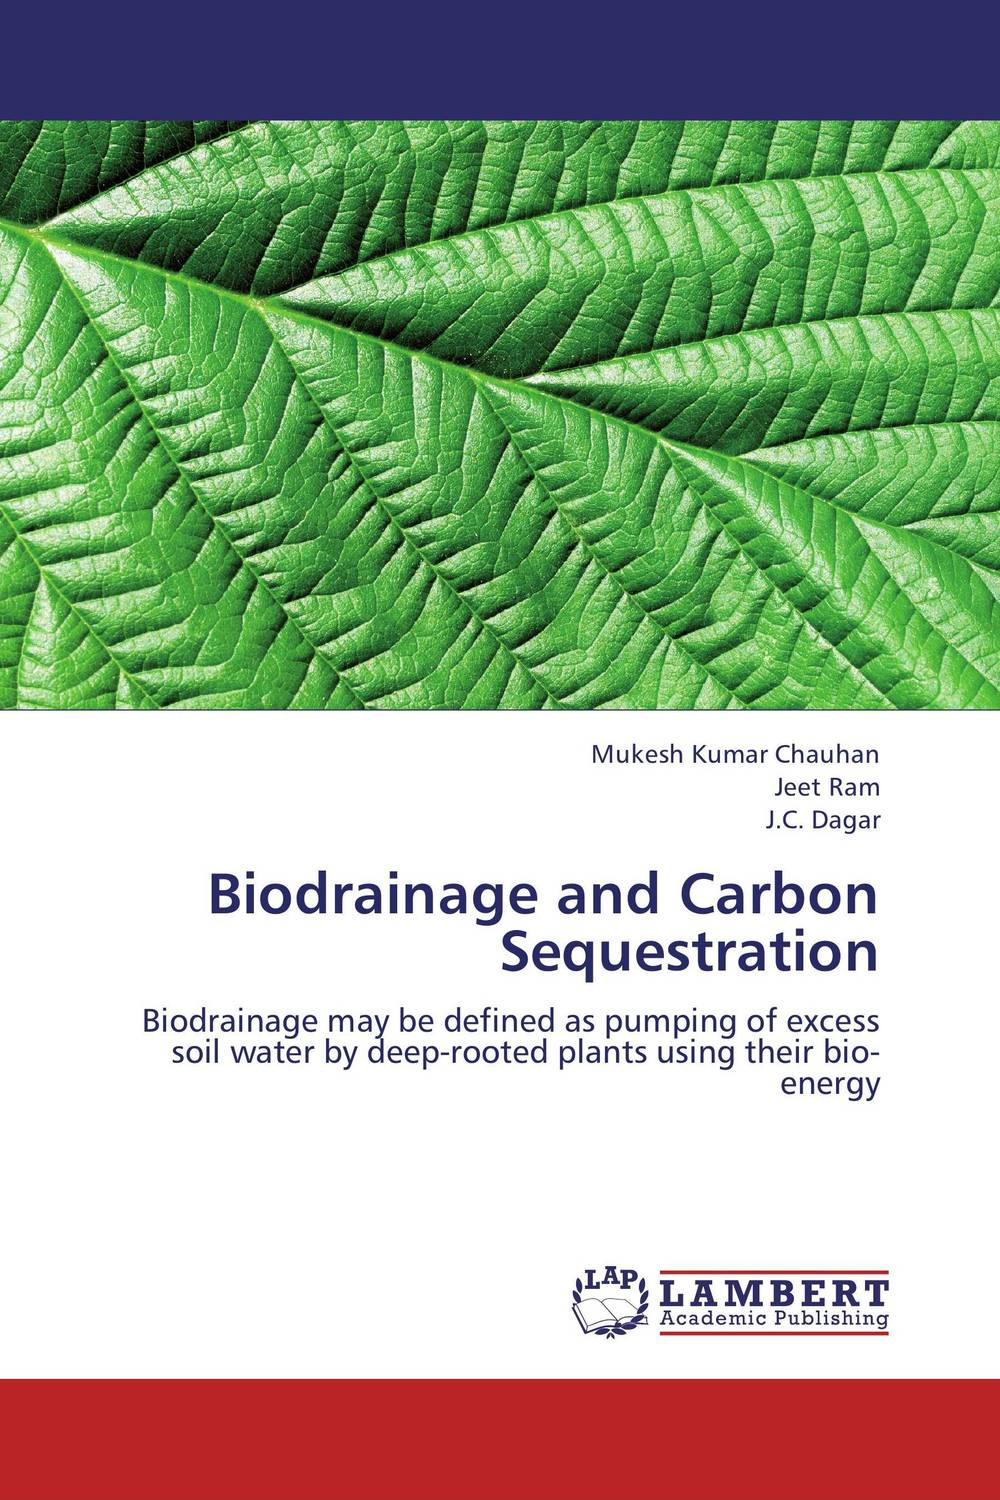 Biodrainage and Carbon Sequestration gnanasekar s and chandrasekhar c n carbon sequestration in multipurpose tree species at seedling stage